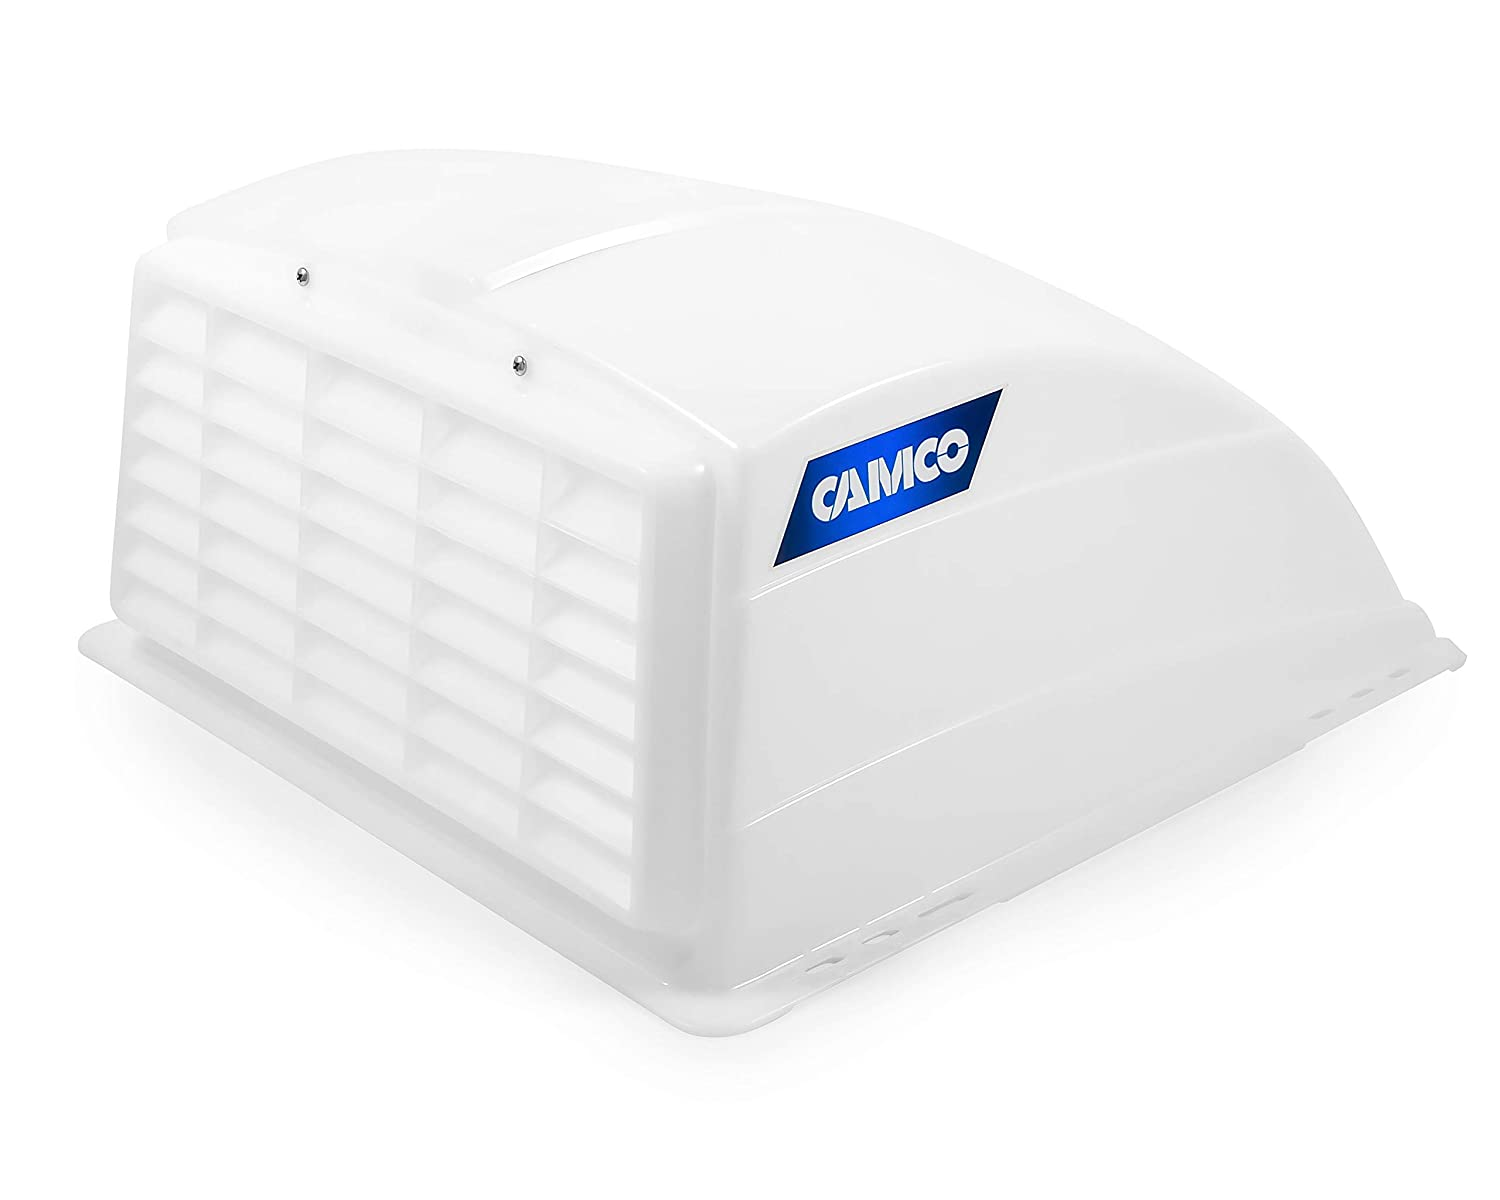 Roof Vent Covers >> Camco Rv Roof Vent Cover Opens For Easy Cleaning Aerodynamic Design Easily Mounts To Rv With Included Hardware White 40431